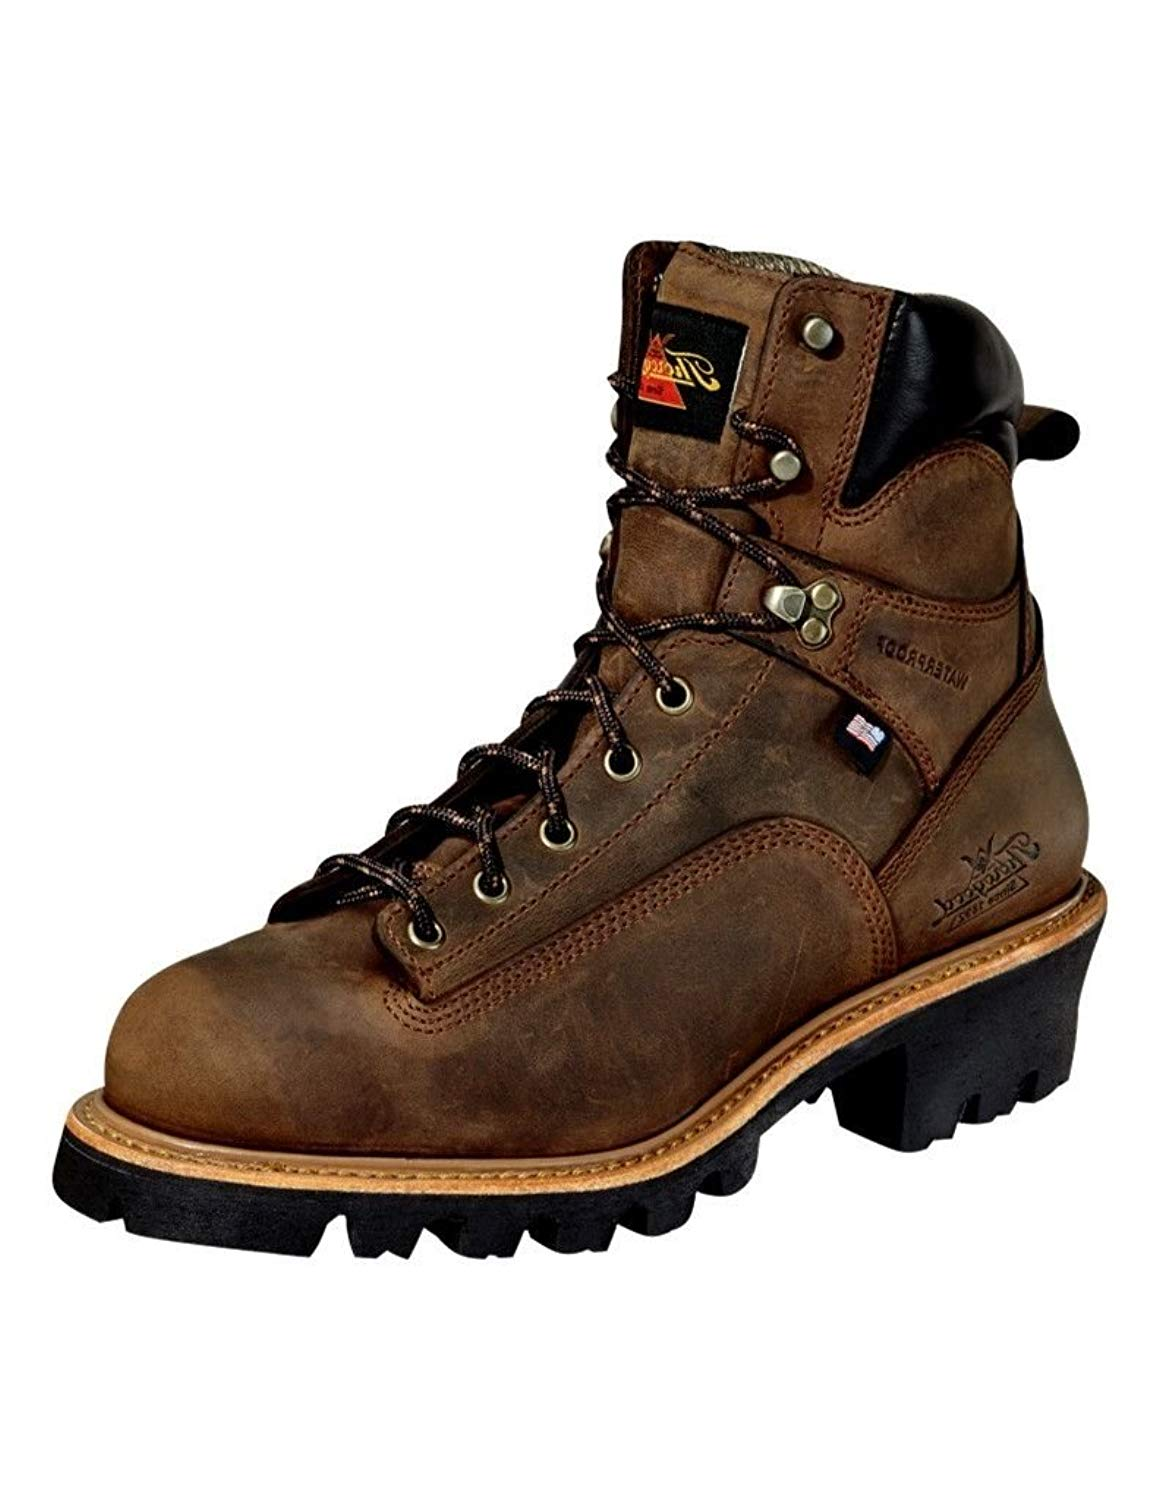 cc759cde5ce Cheap Thorogood Logger Boots, find Thorogood Logger Boots deals on ...